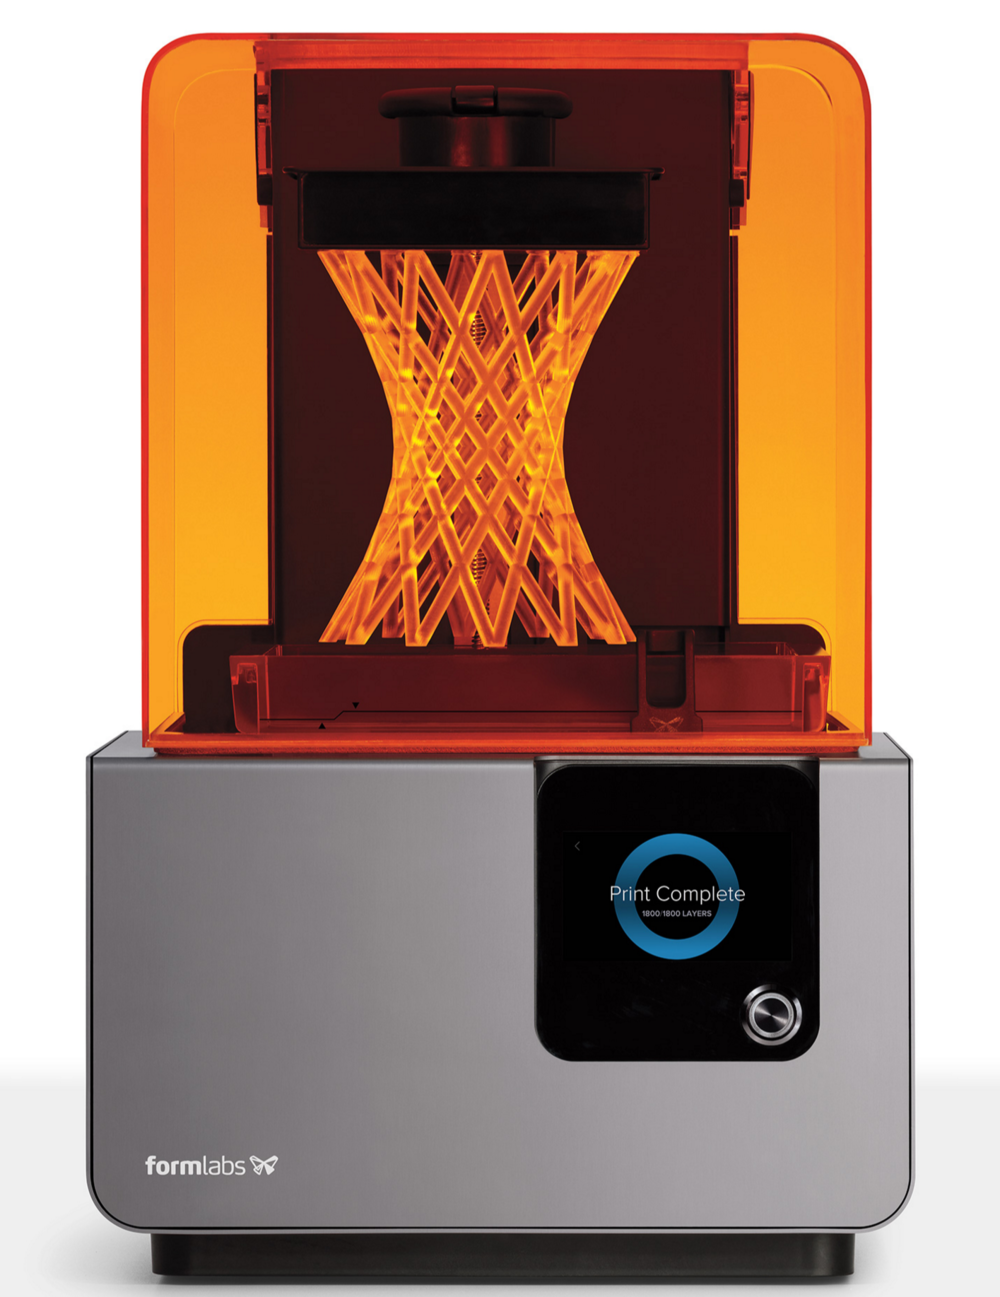 Formlabs Form 2. Image courtesy: Formlabs official website.